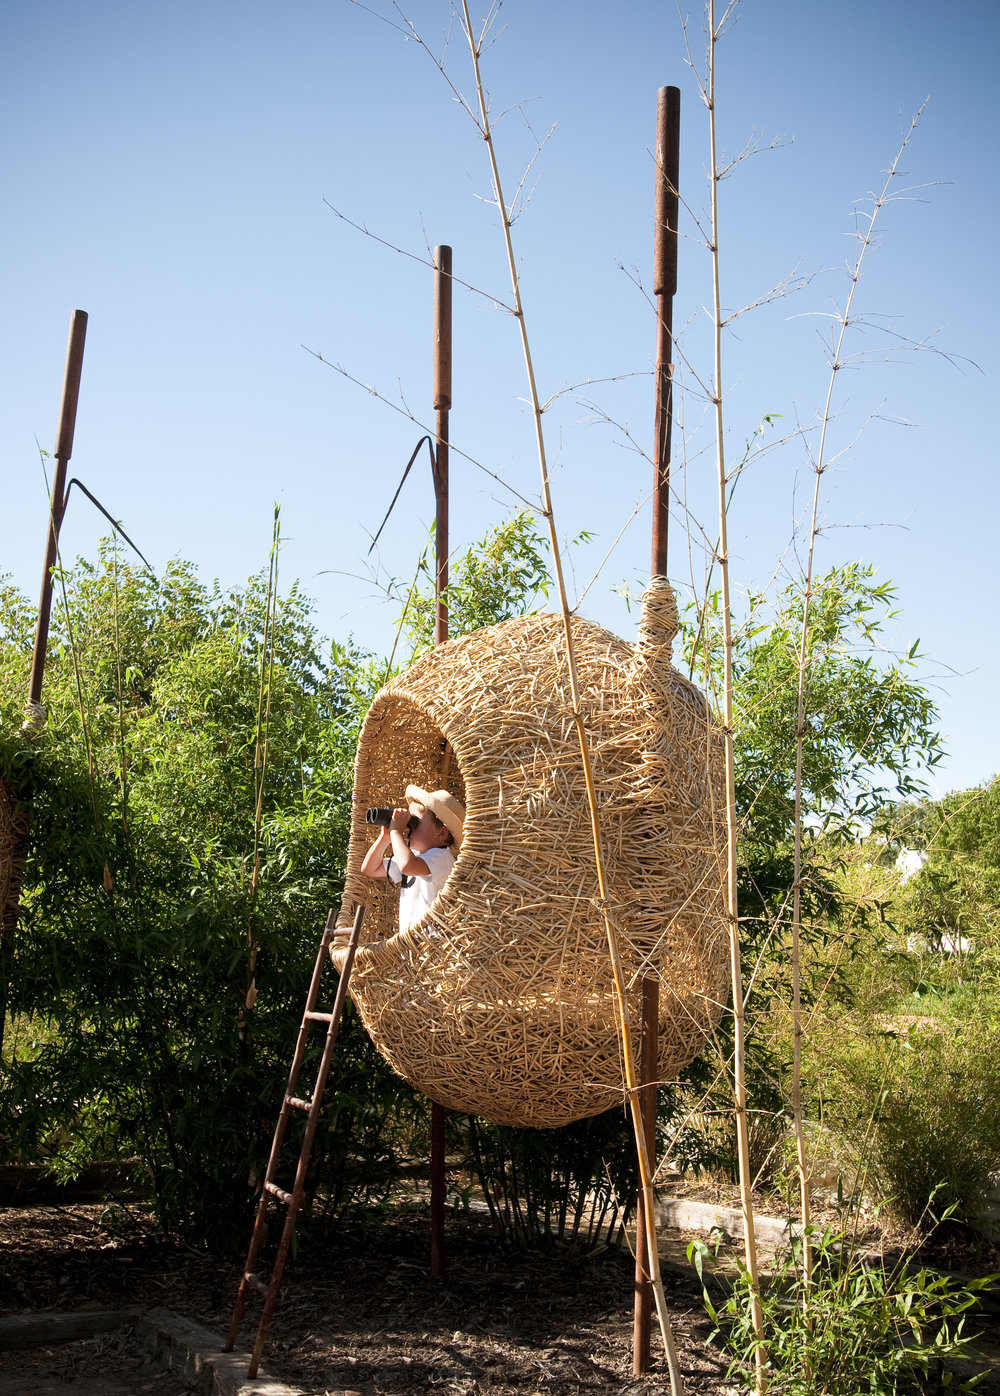 12.Bird watching at Babylonstoren! Porky Hefer designed these human-sized nests among the reeds.jpg